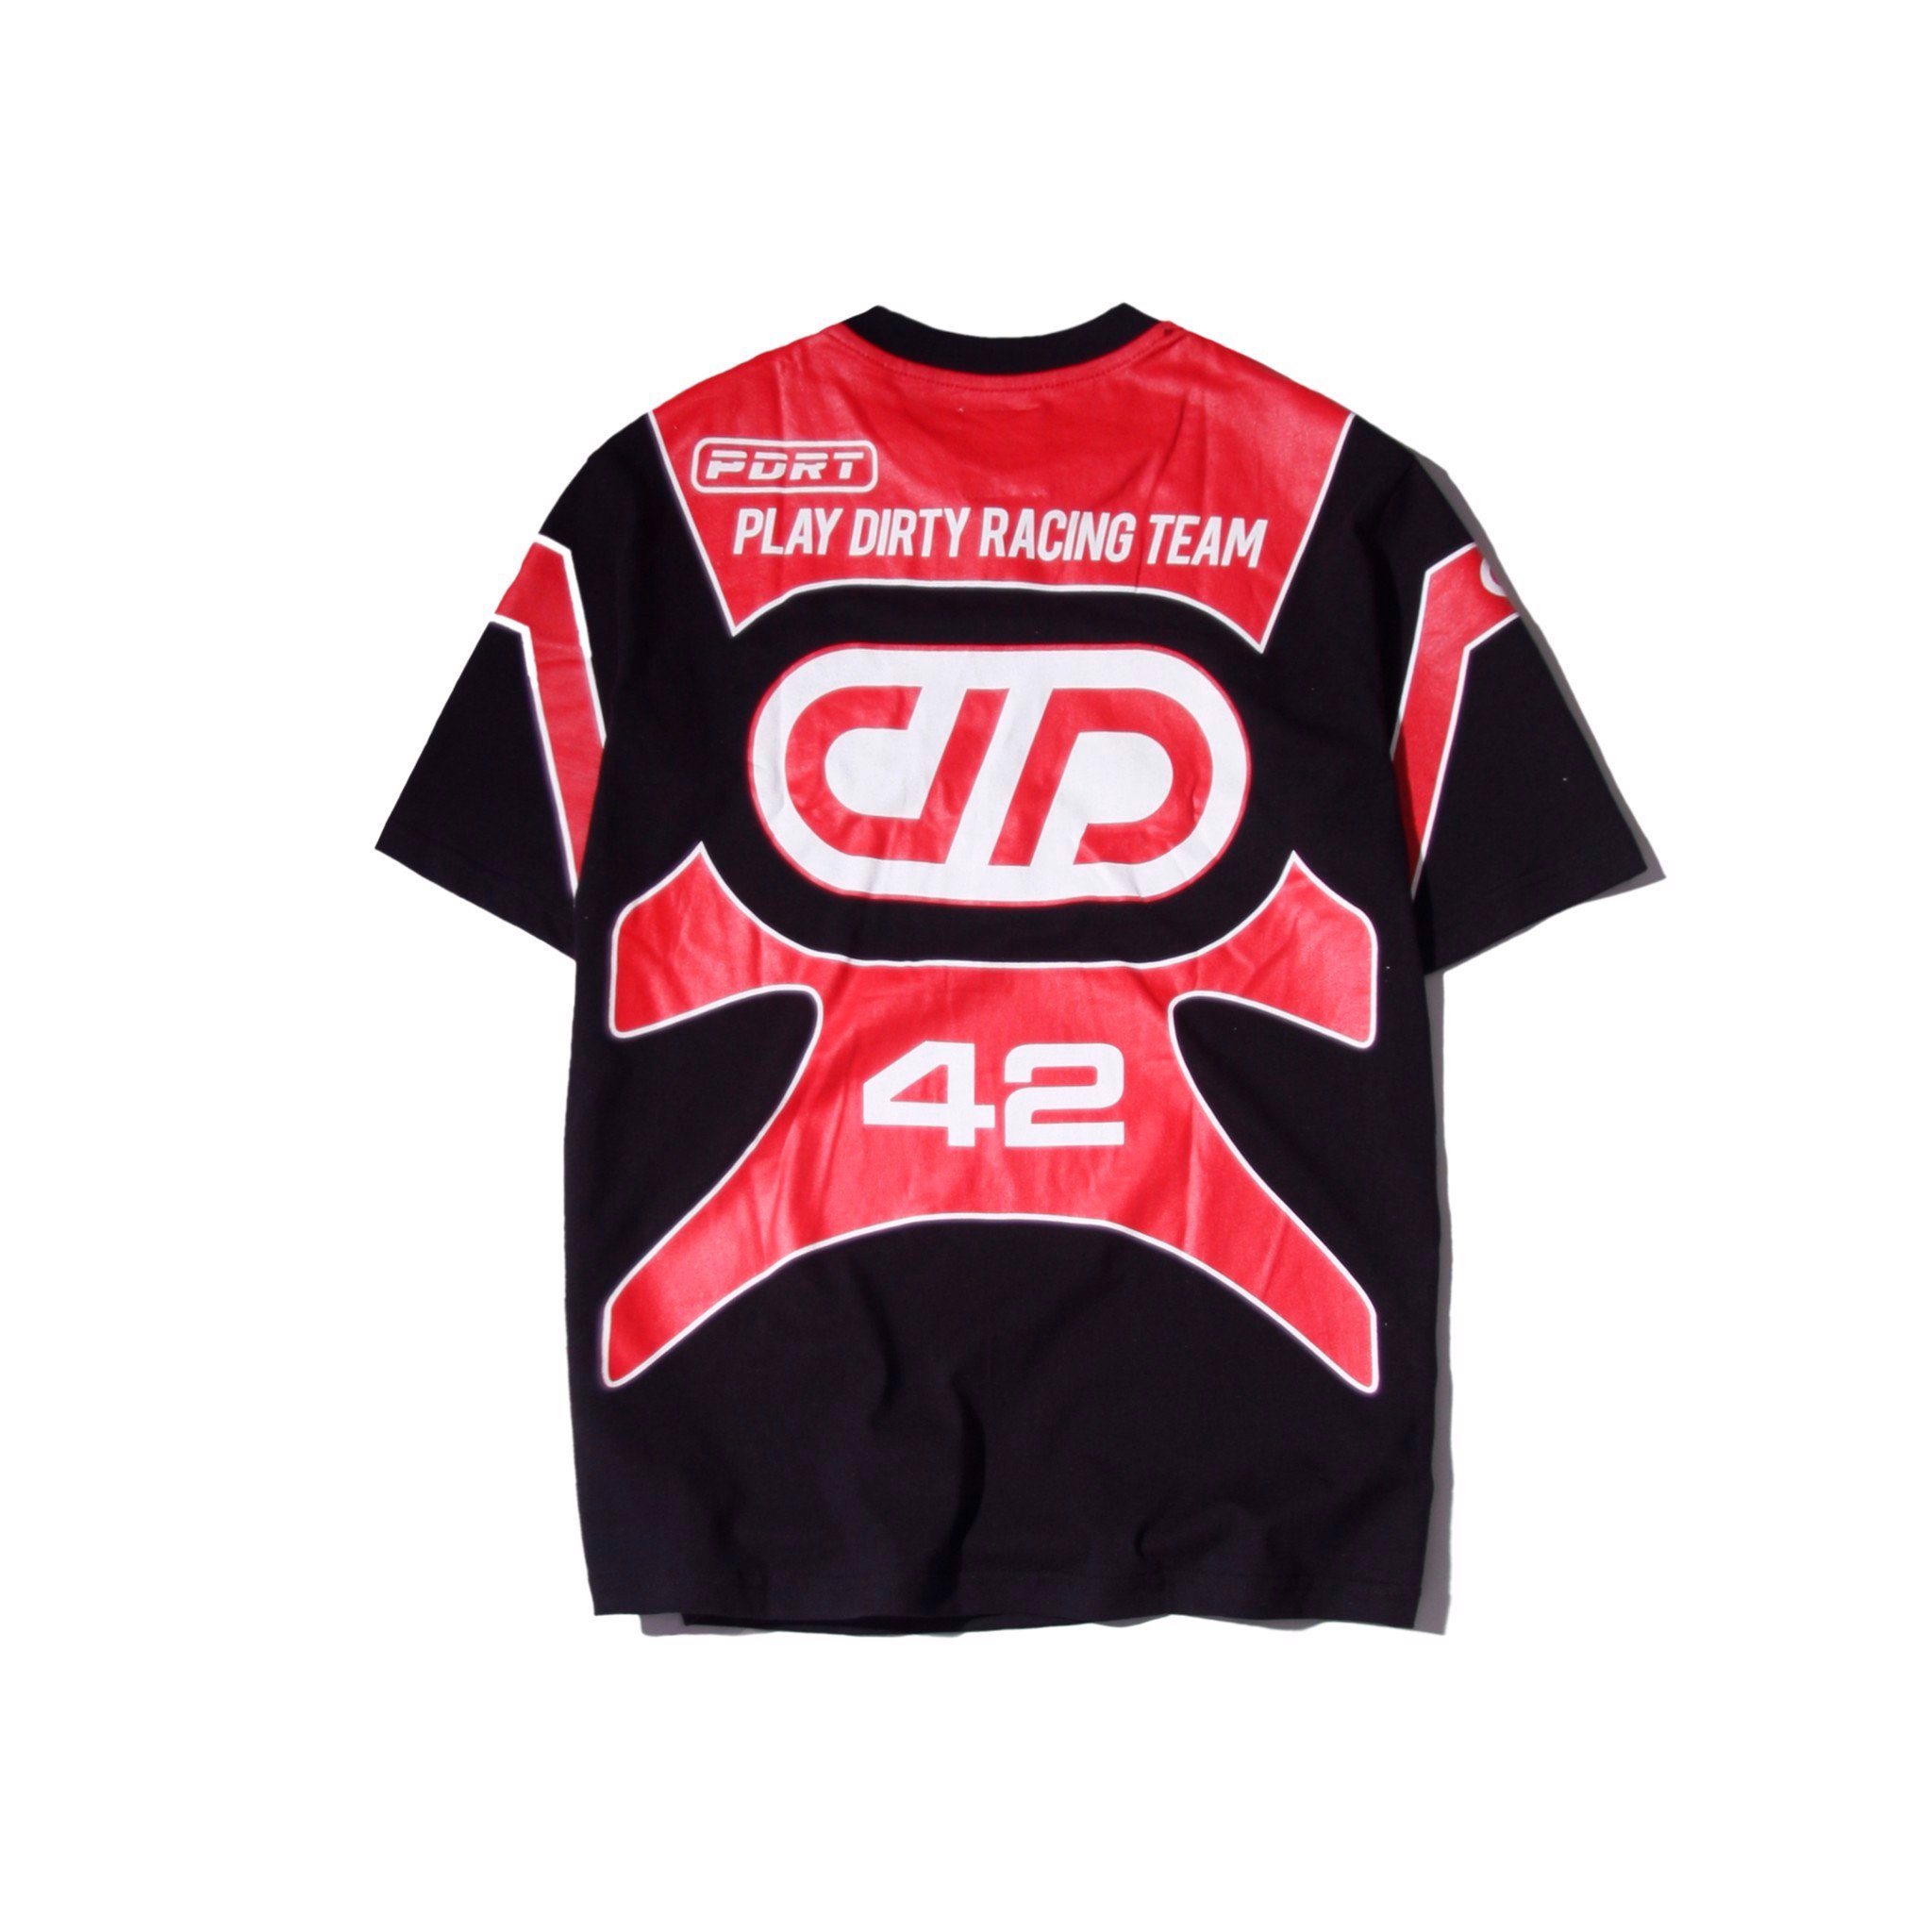 PD Racing Team Shirt